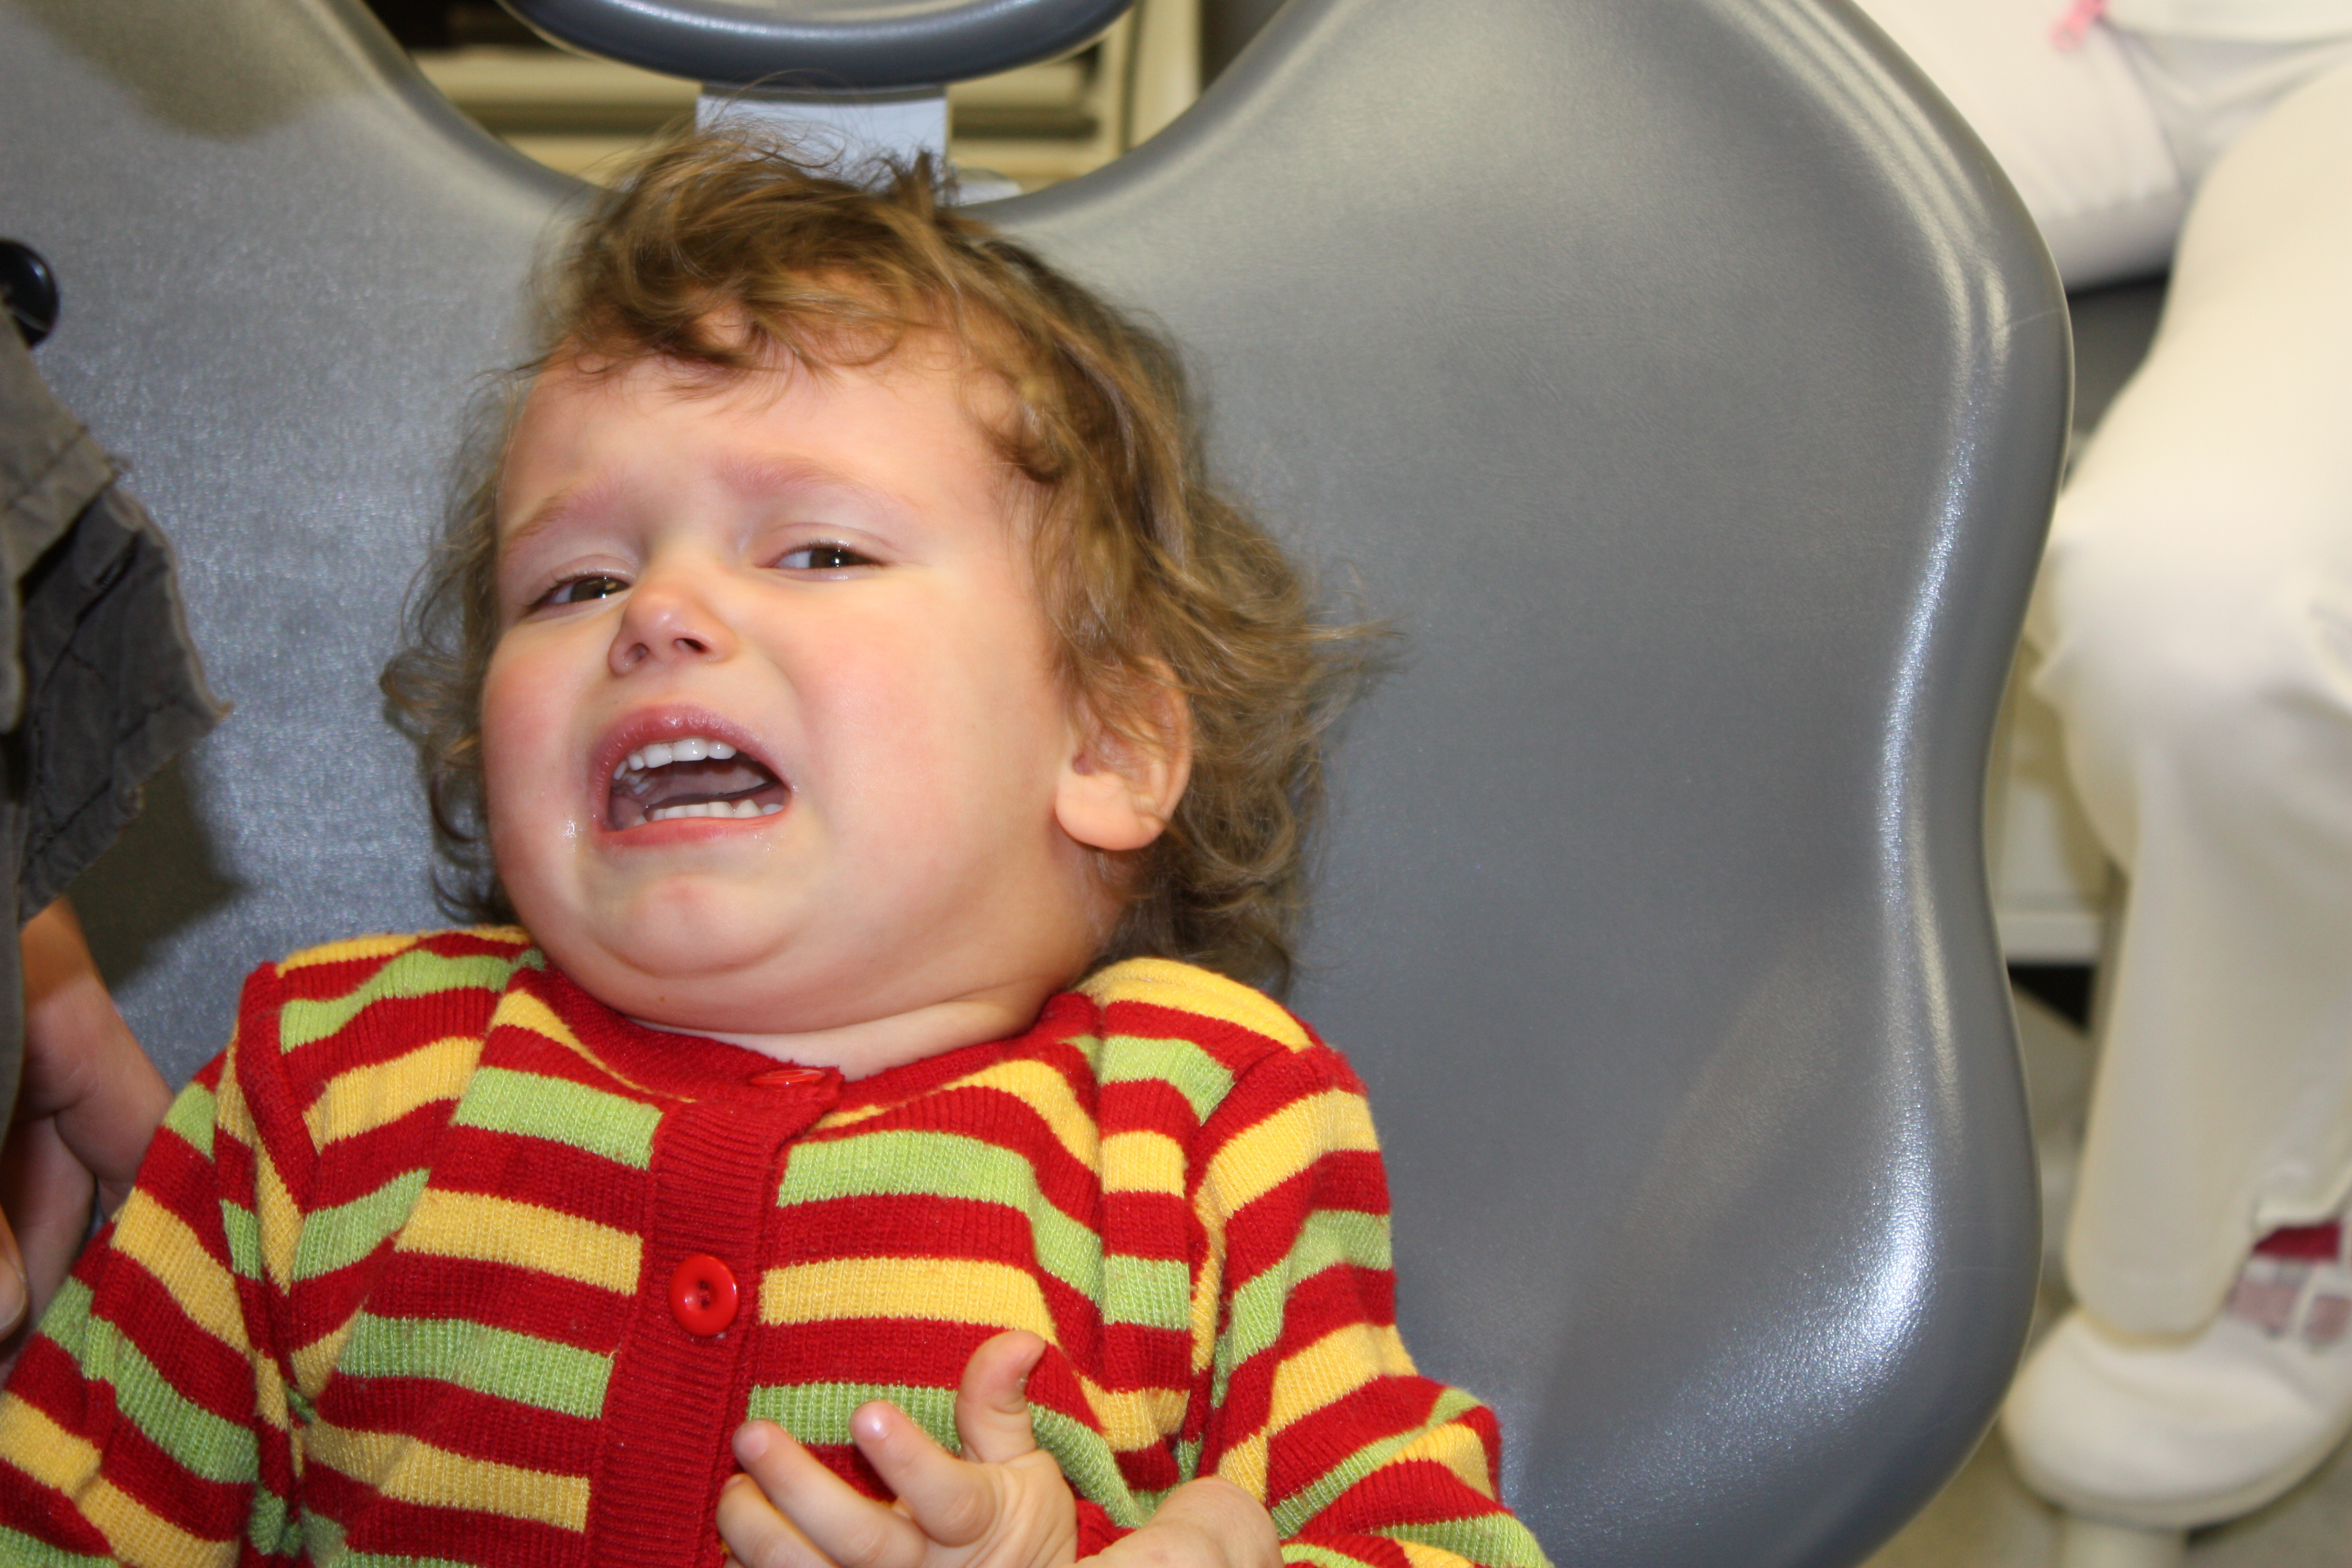 Angry child at dental treatment